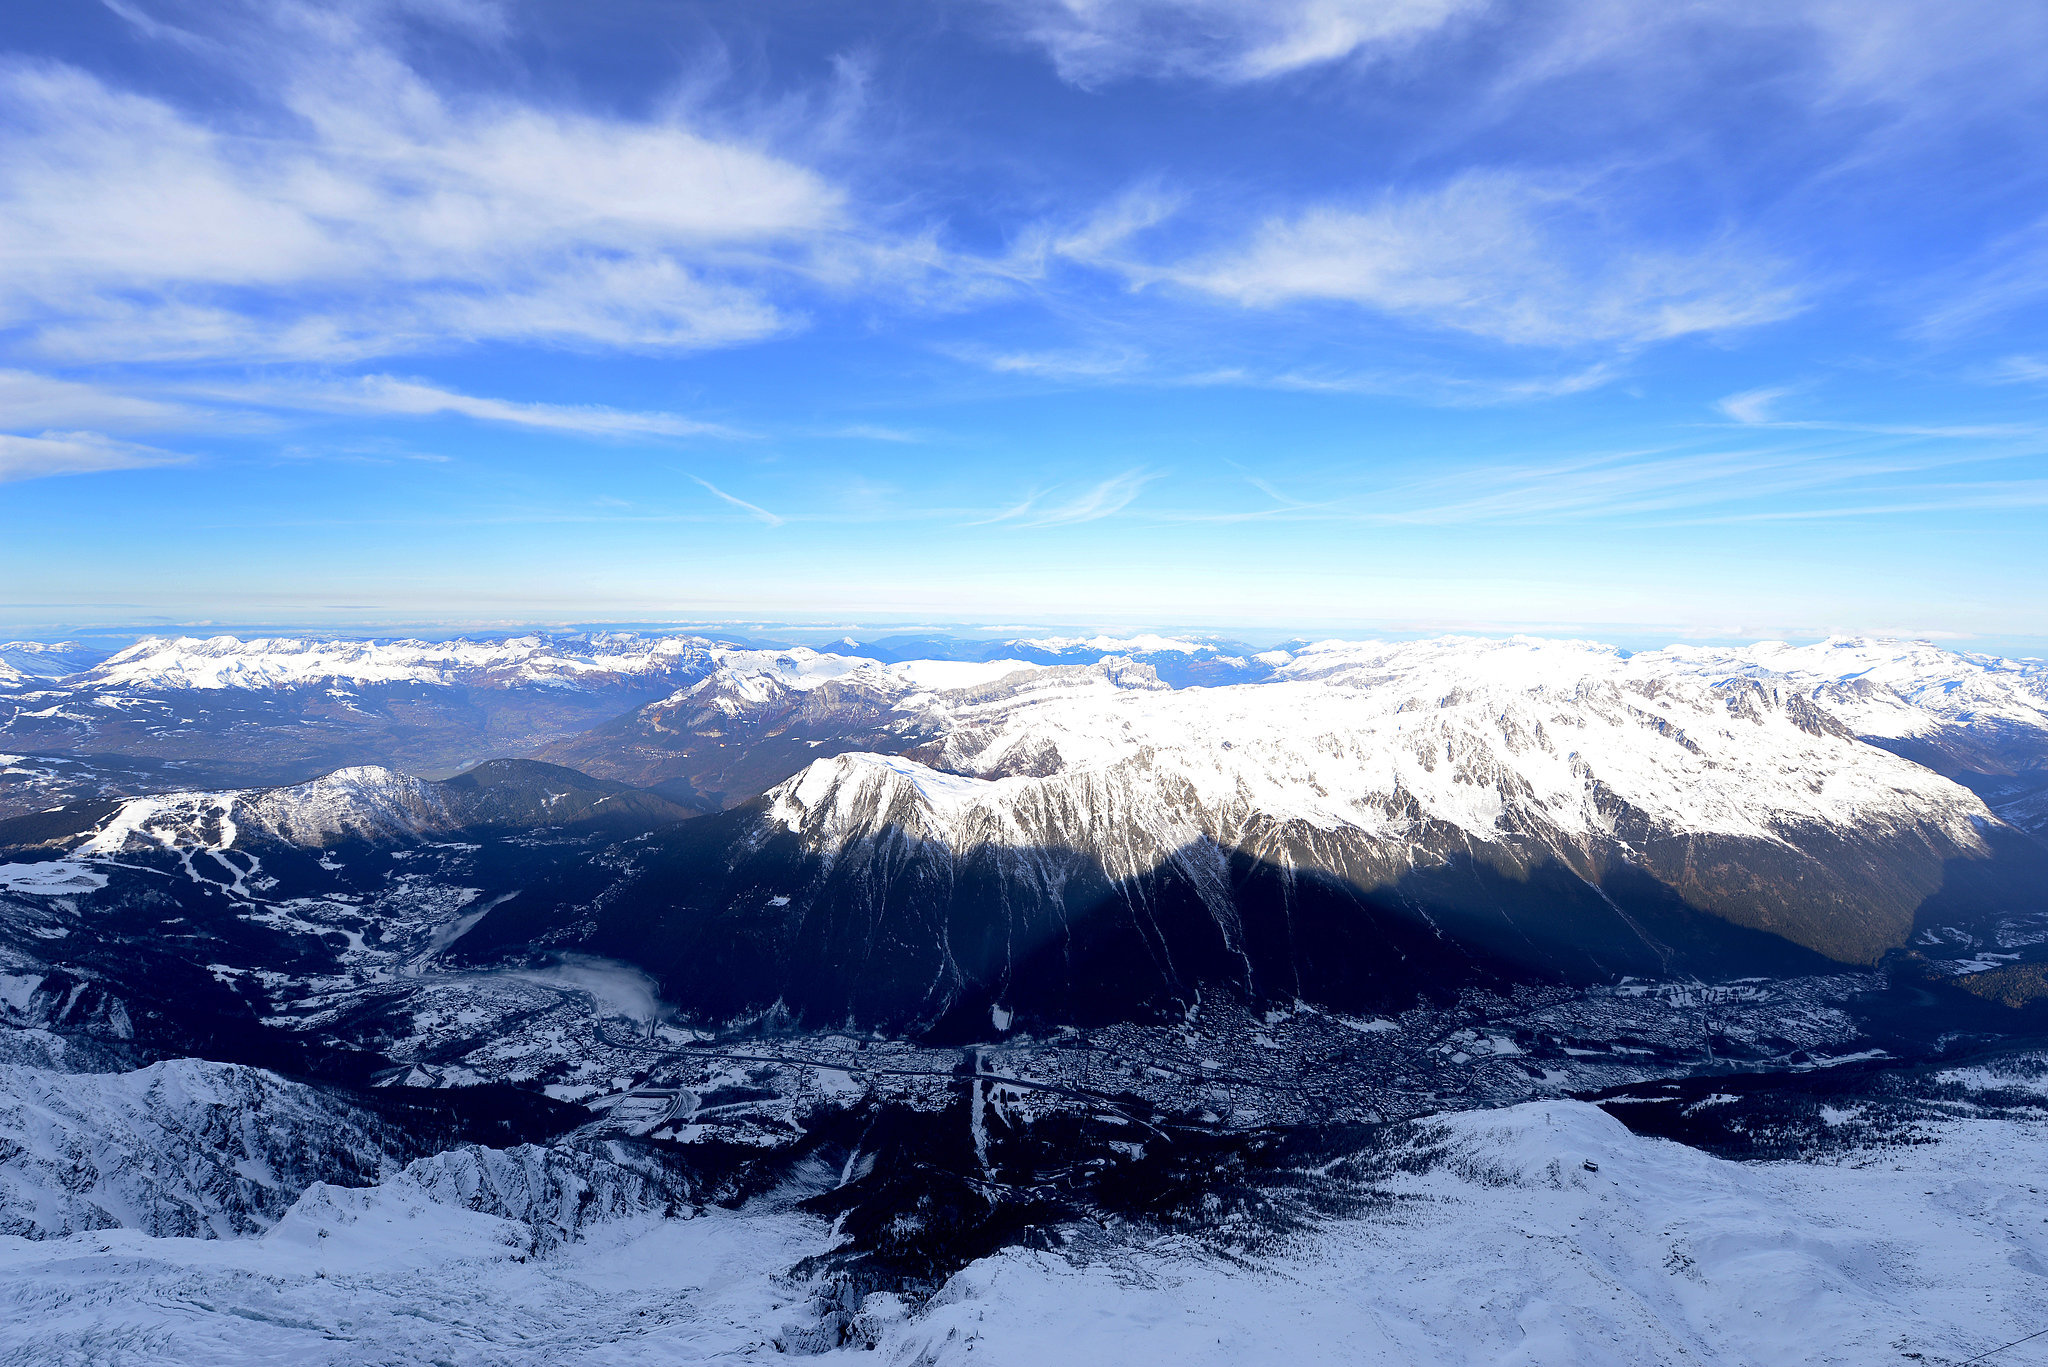 The French Alps were covered in snow on a sunny day in December.